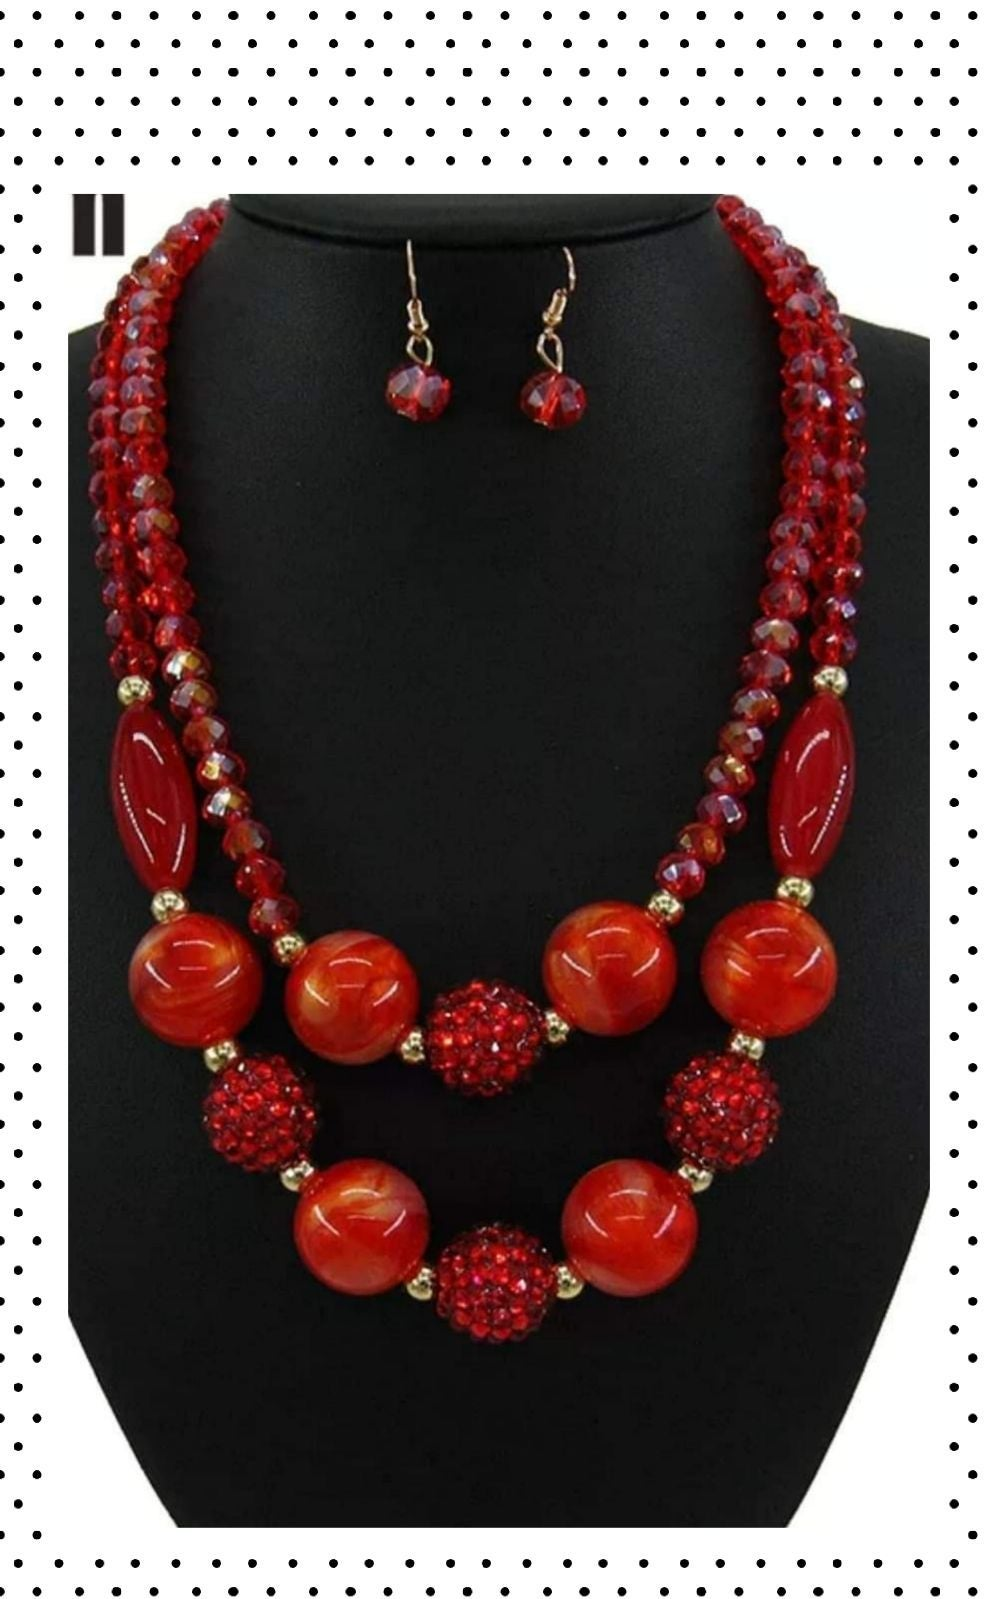 Cherry Red Crystal Beads Necklace set